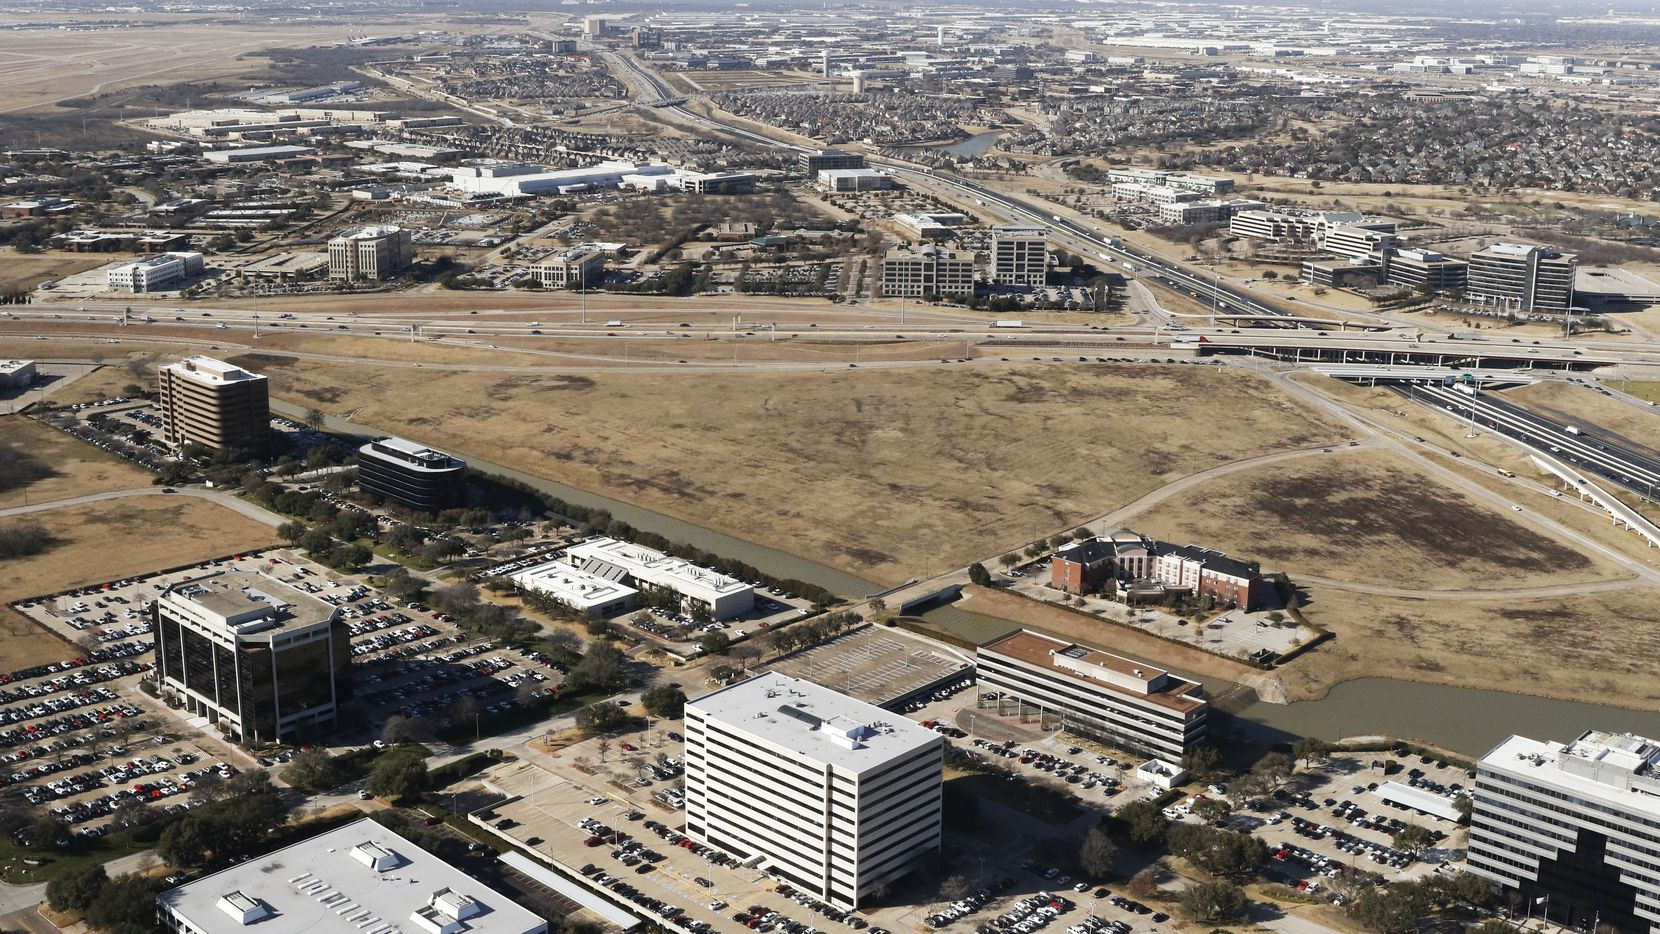 Jerry Jones' Blue Star Land and Lincoln Property plan to build a project with a hotel, retail and apartments at the vacant south corner of State Highways 114 and 161 in Las Colinas.